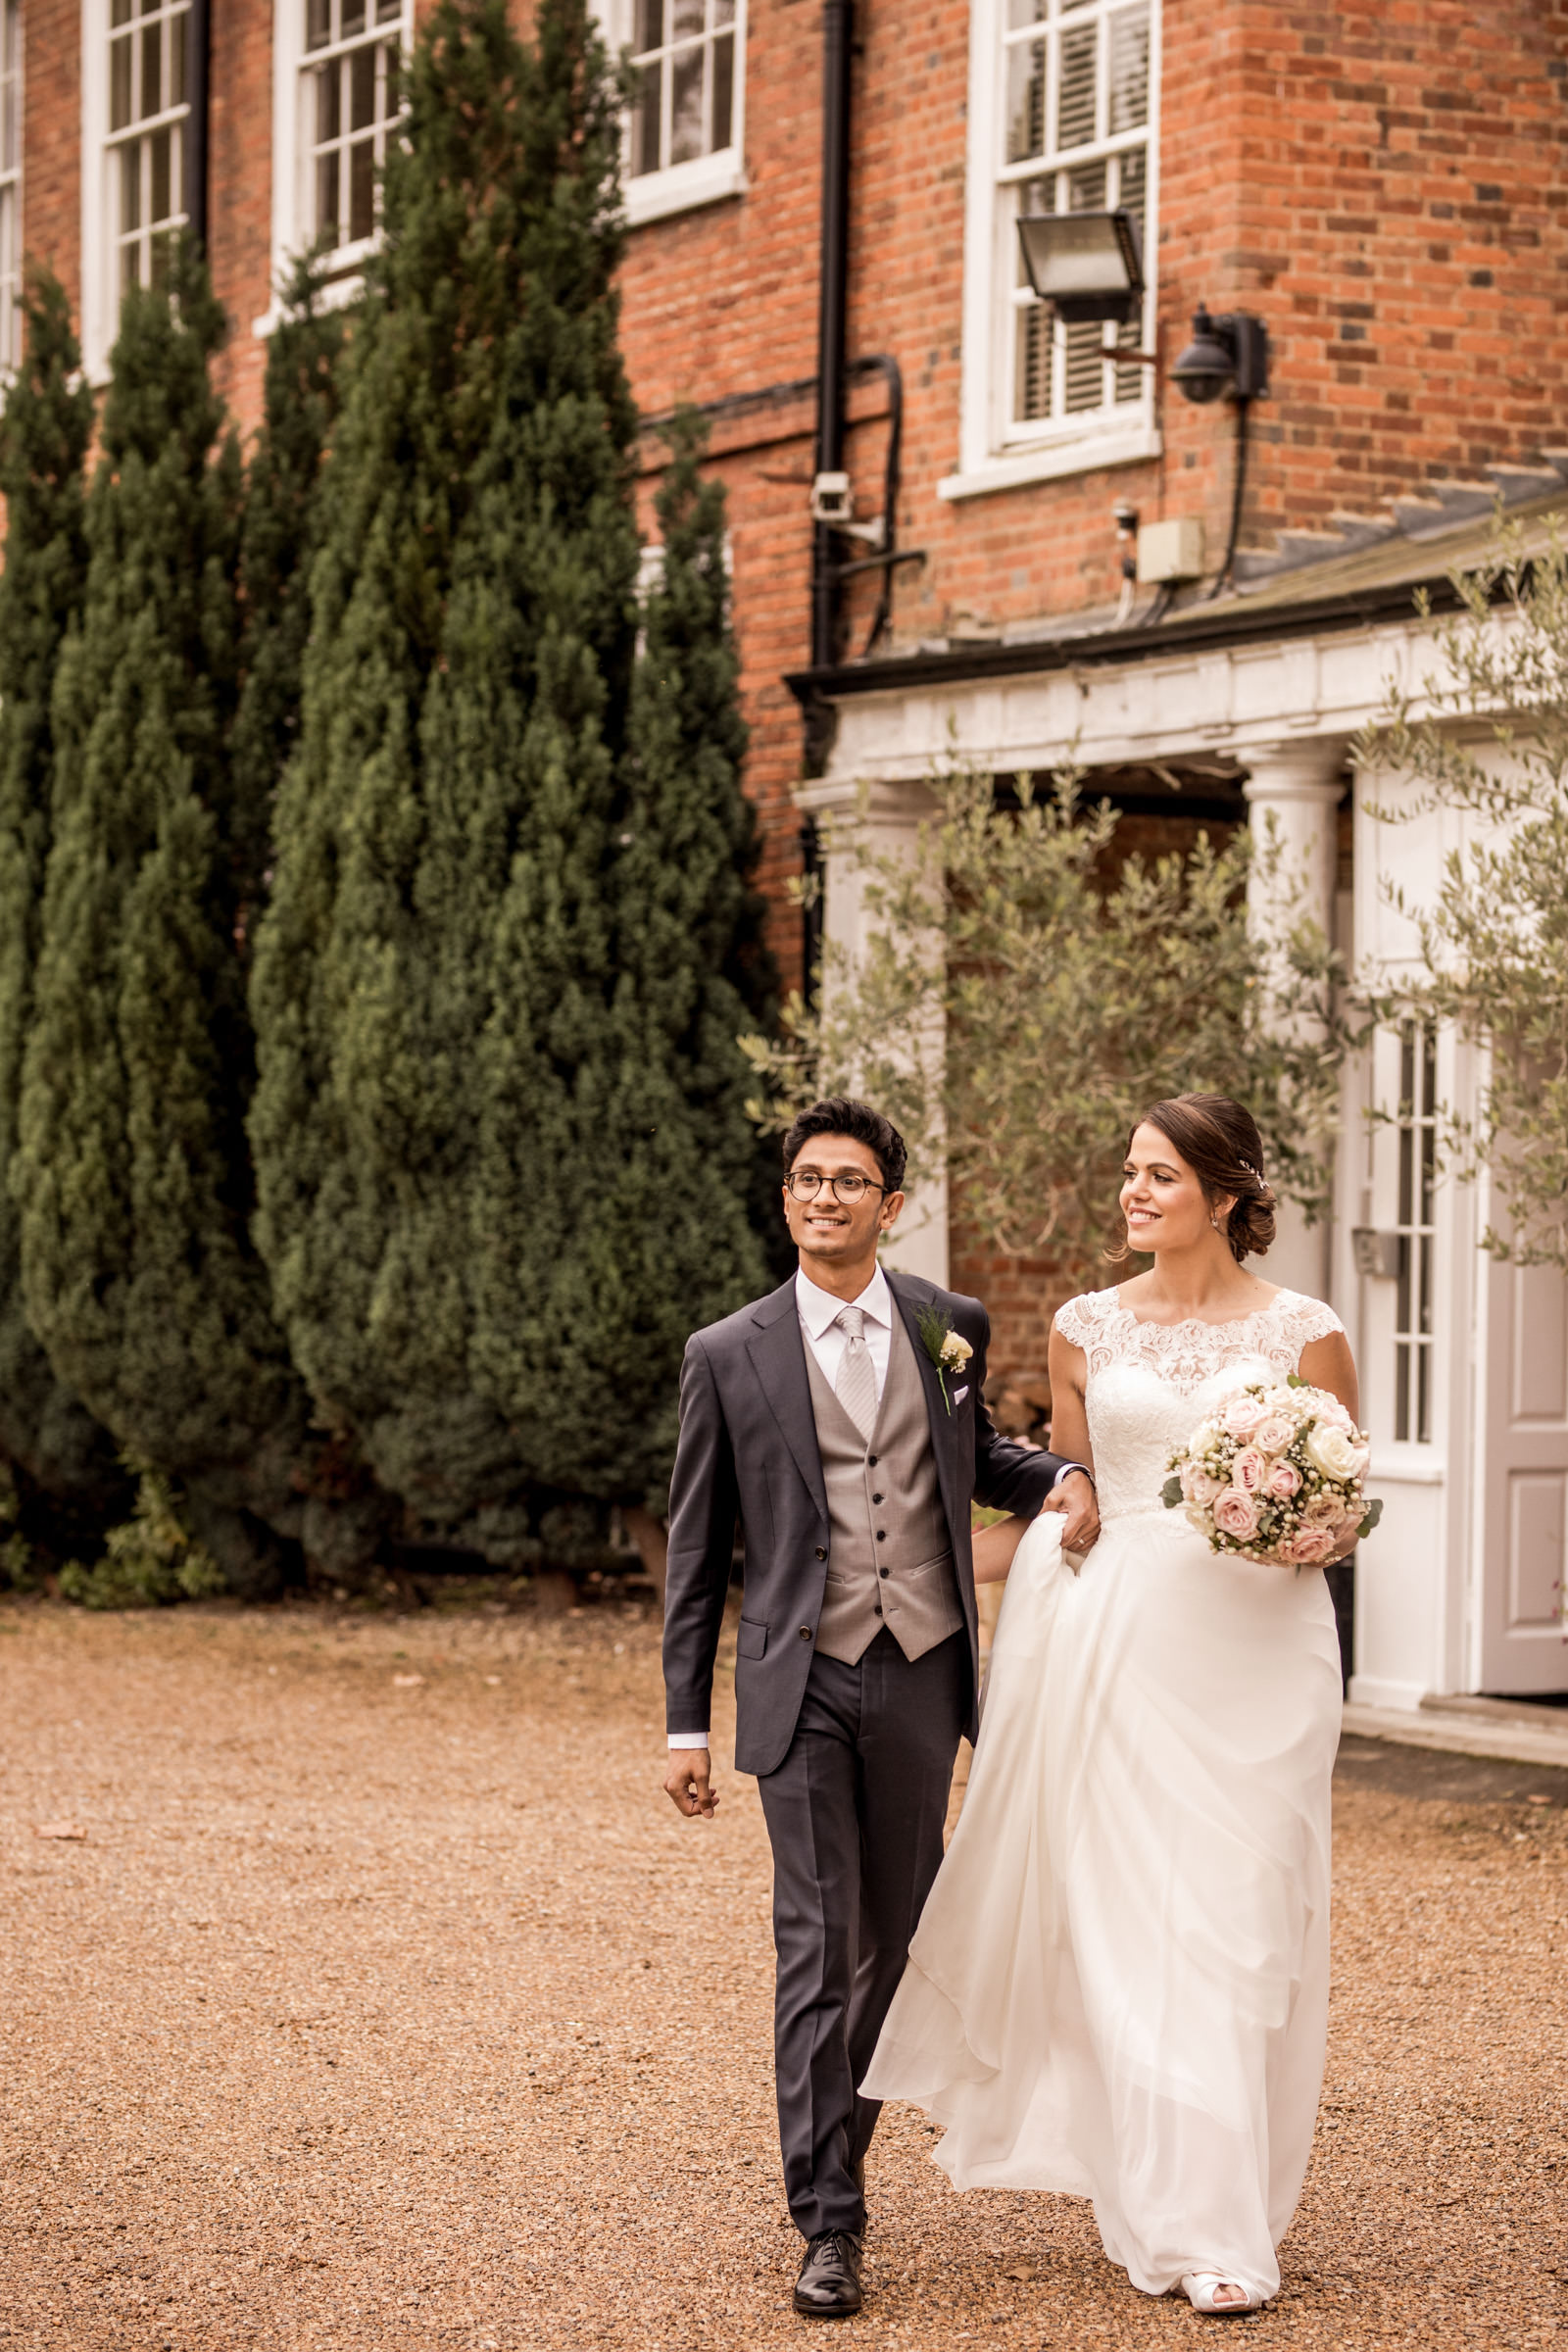 Stoke Place Weddings & Photography 014.jpg